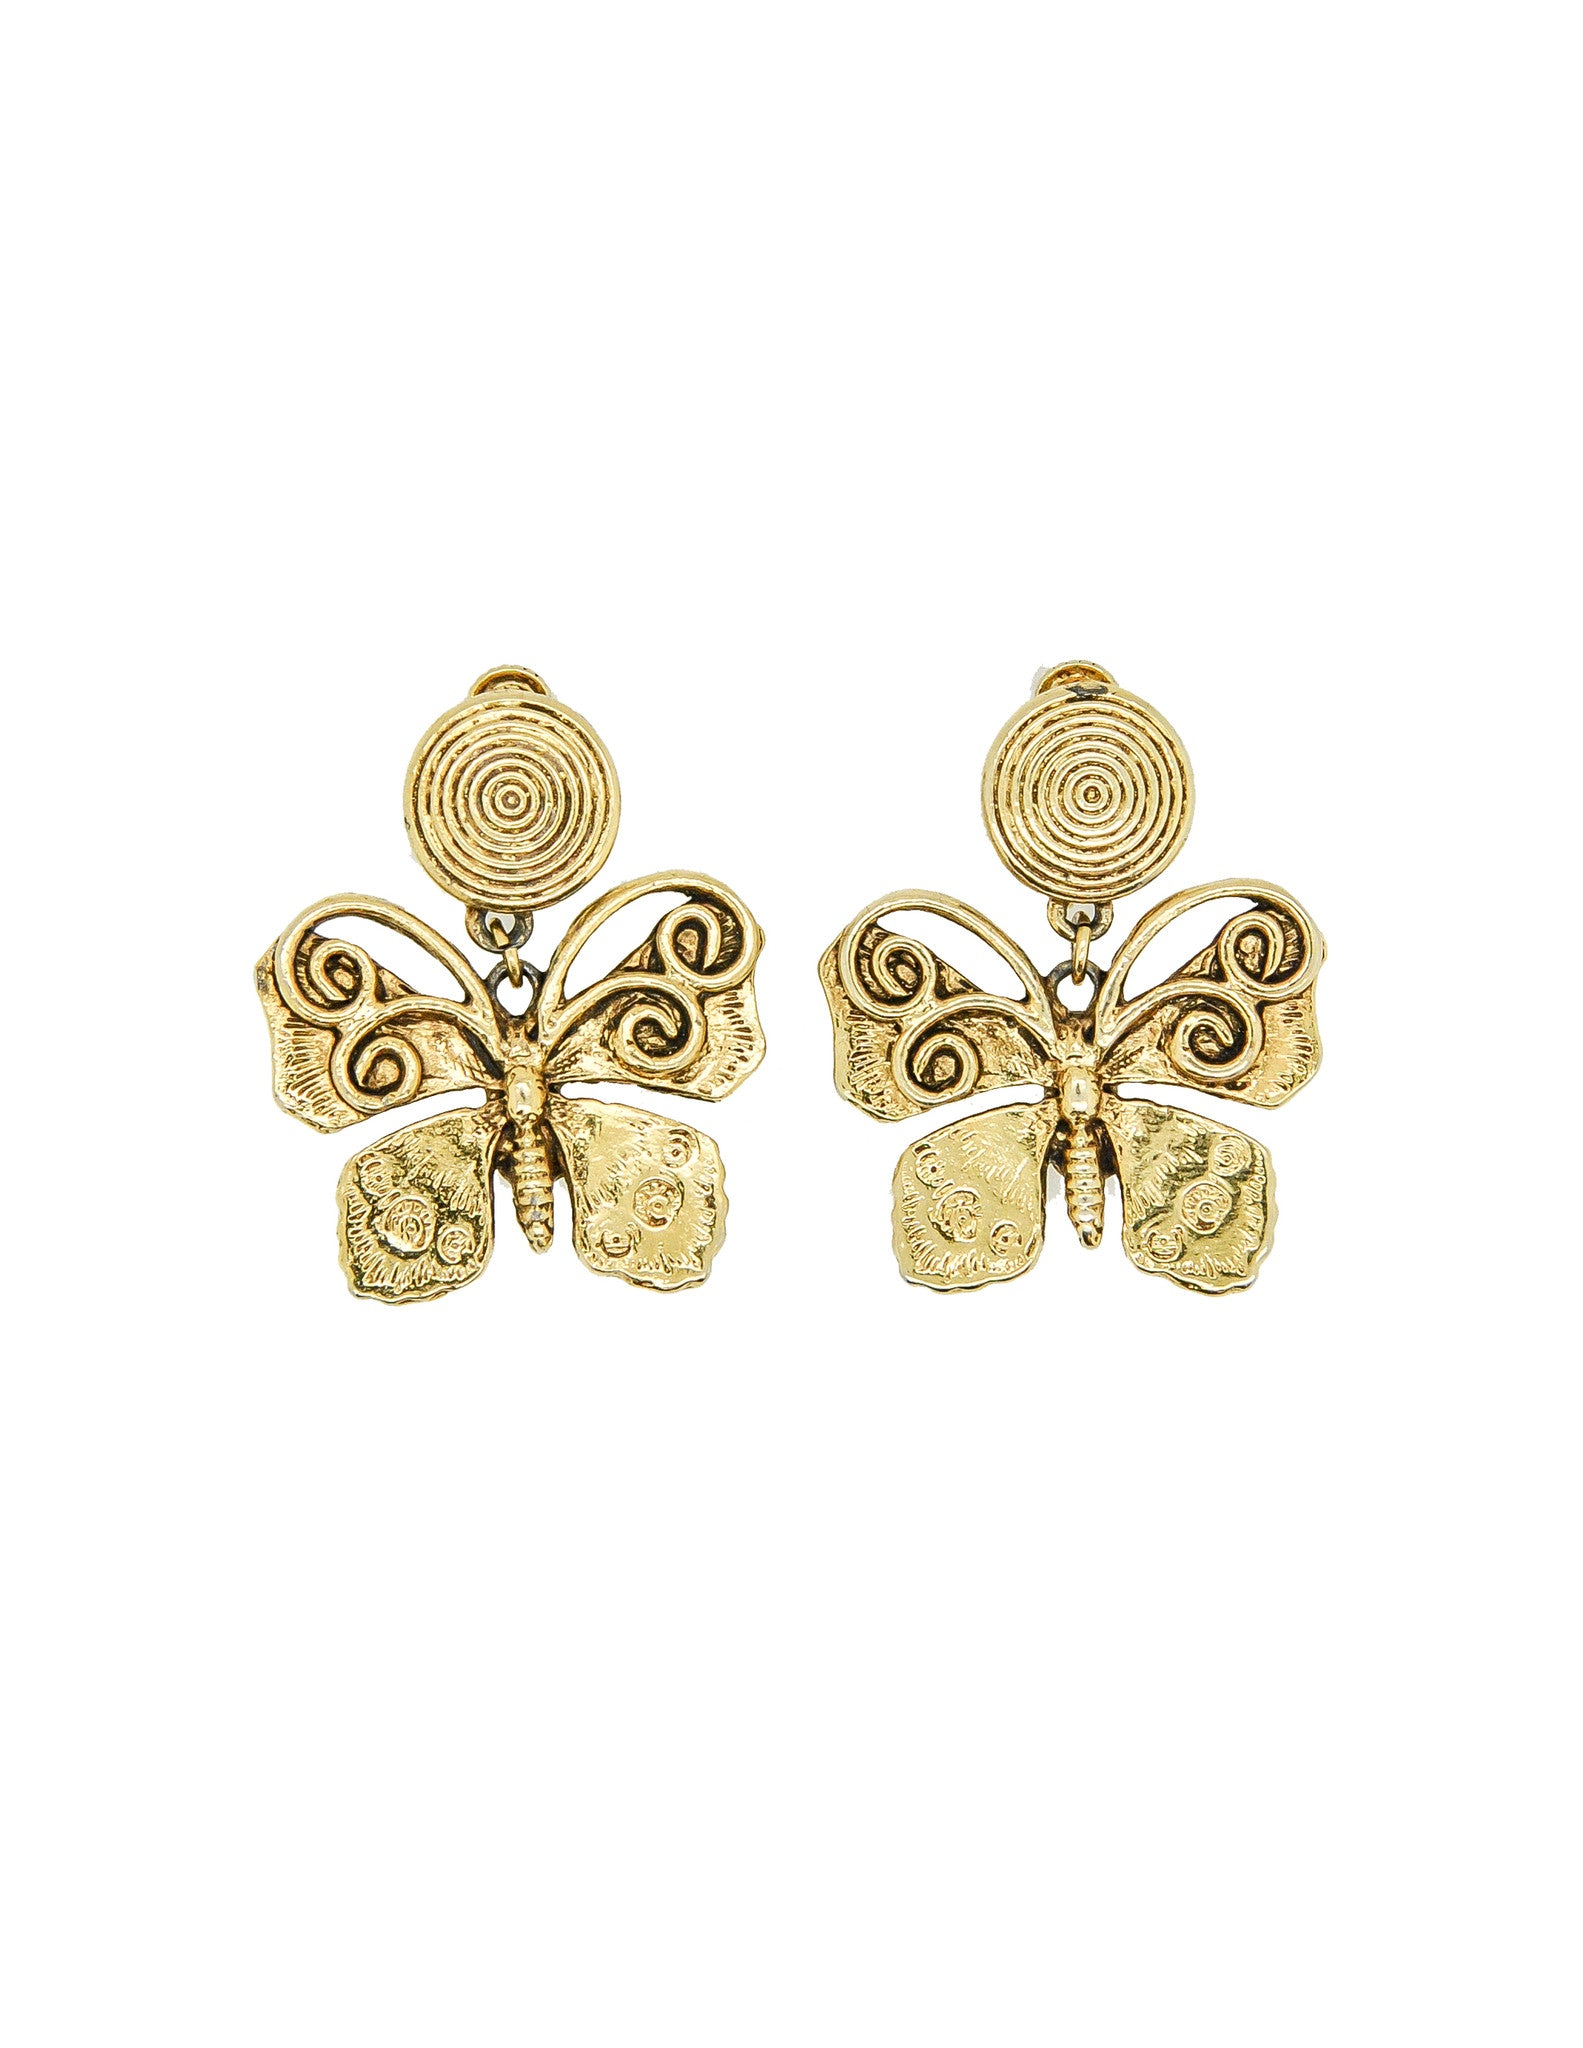 YSL Vintage Gold Butterfly Earrings - Amarcord Vintage Fashion  - 1